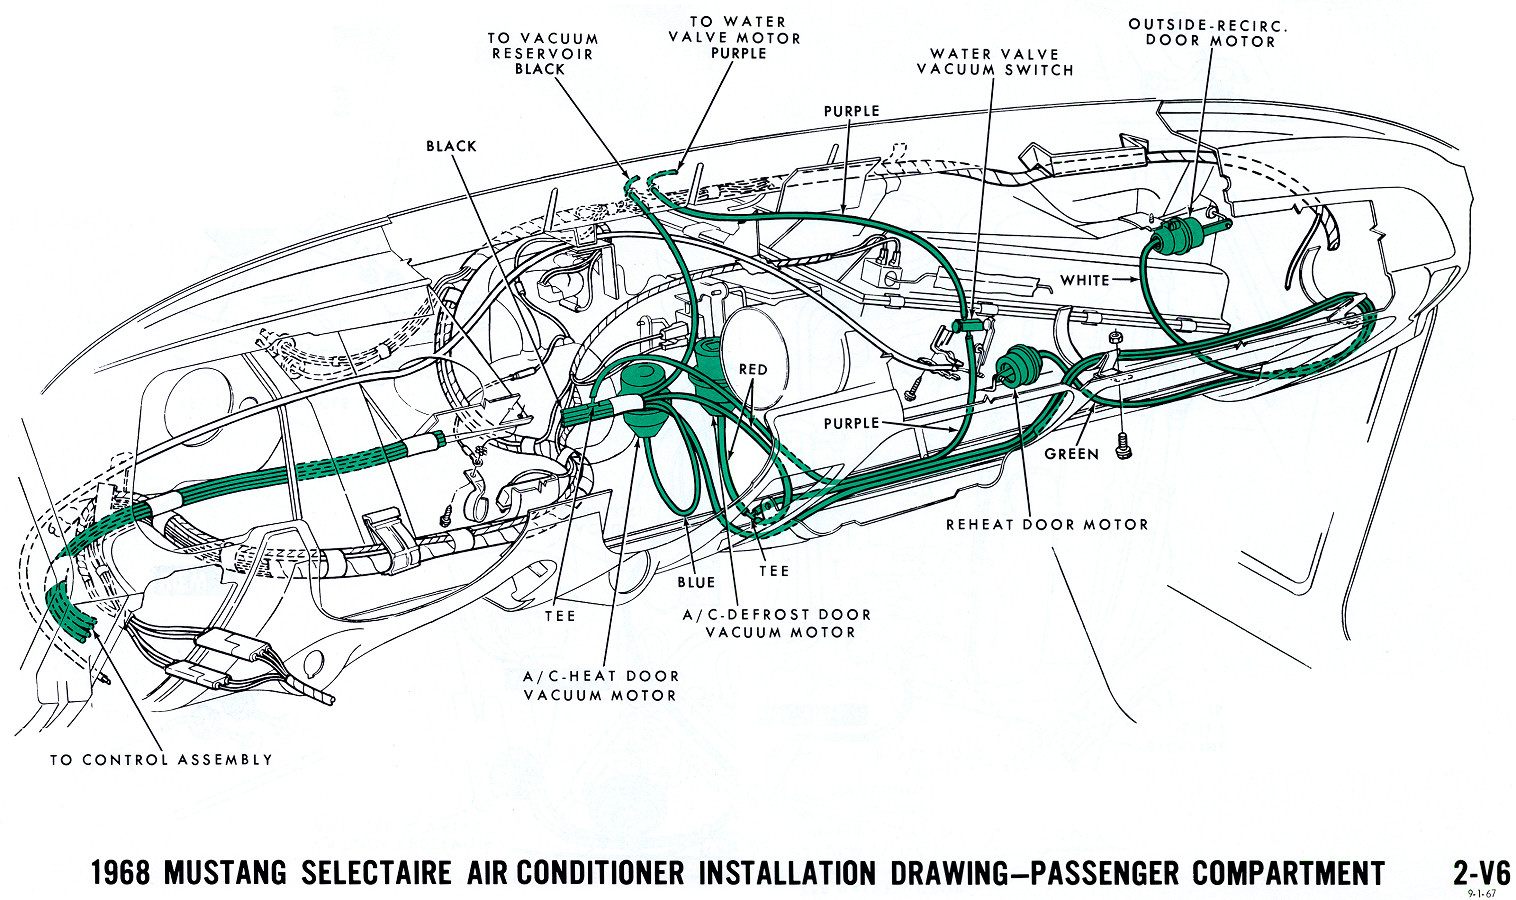 1968 mustang wiring diagrams and vacuum schematics chrysler stereo wiring diagram chrysler radio wiring harness diagram